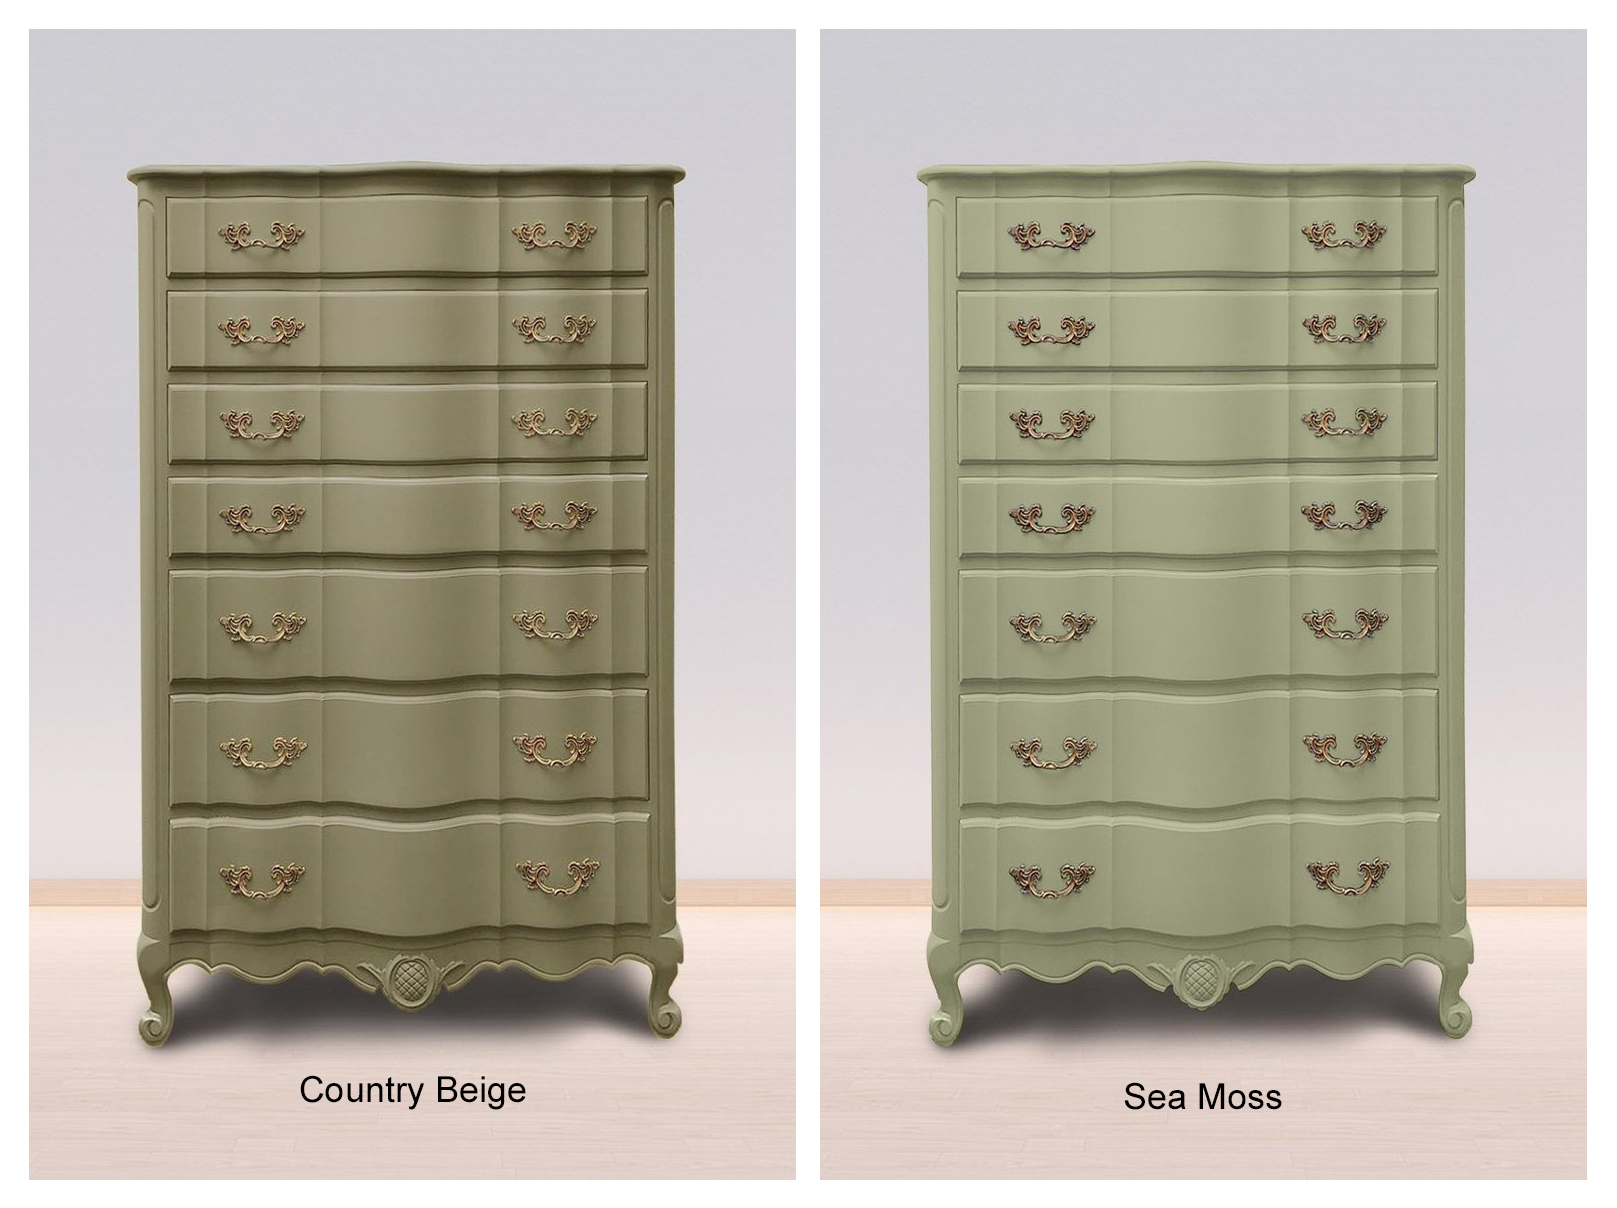 Sea Moss & Country Beige